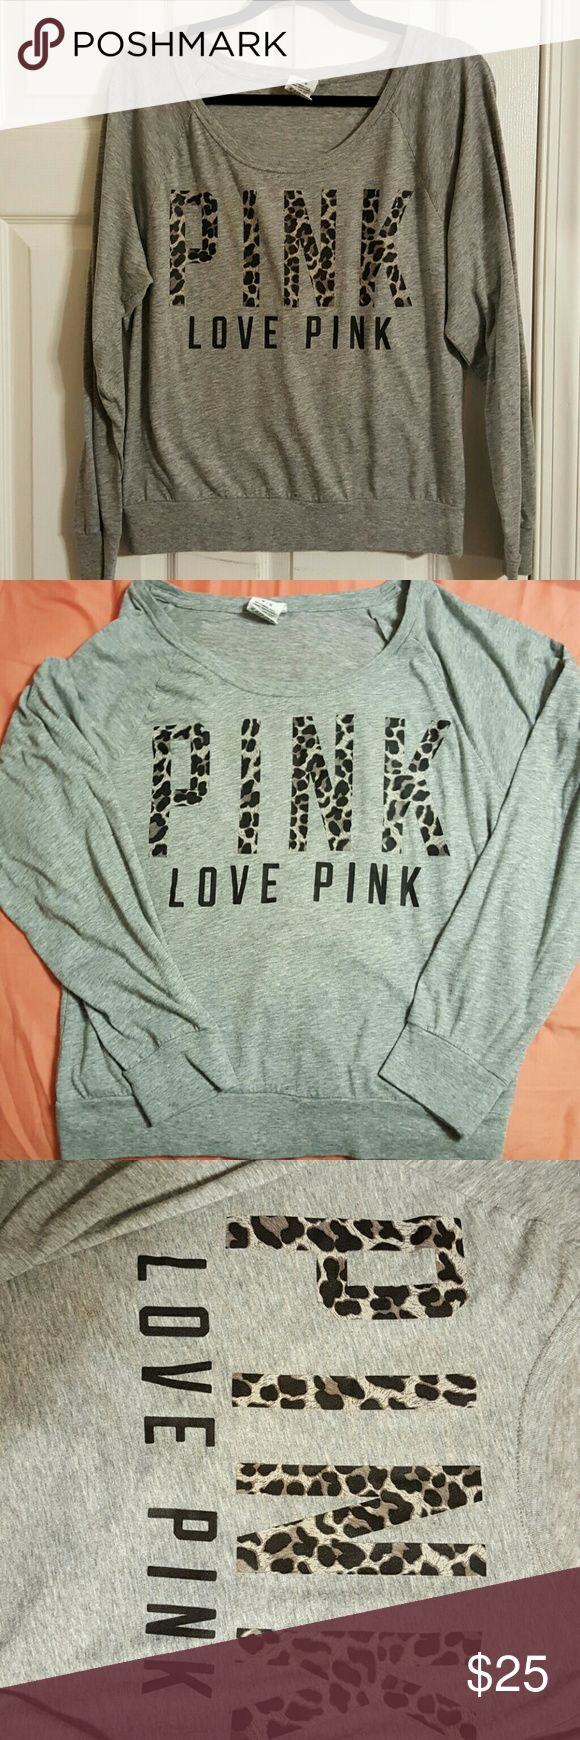 PINK Victoria's secret long tee Pink Victoria Secret long sleeve tee shirt material sweatshirt style.  Heather grey color black Leopard writing in PINK.. CUTE PINK Victoria's Secret Tops Tees - Long Sleeve